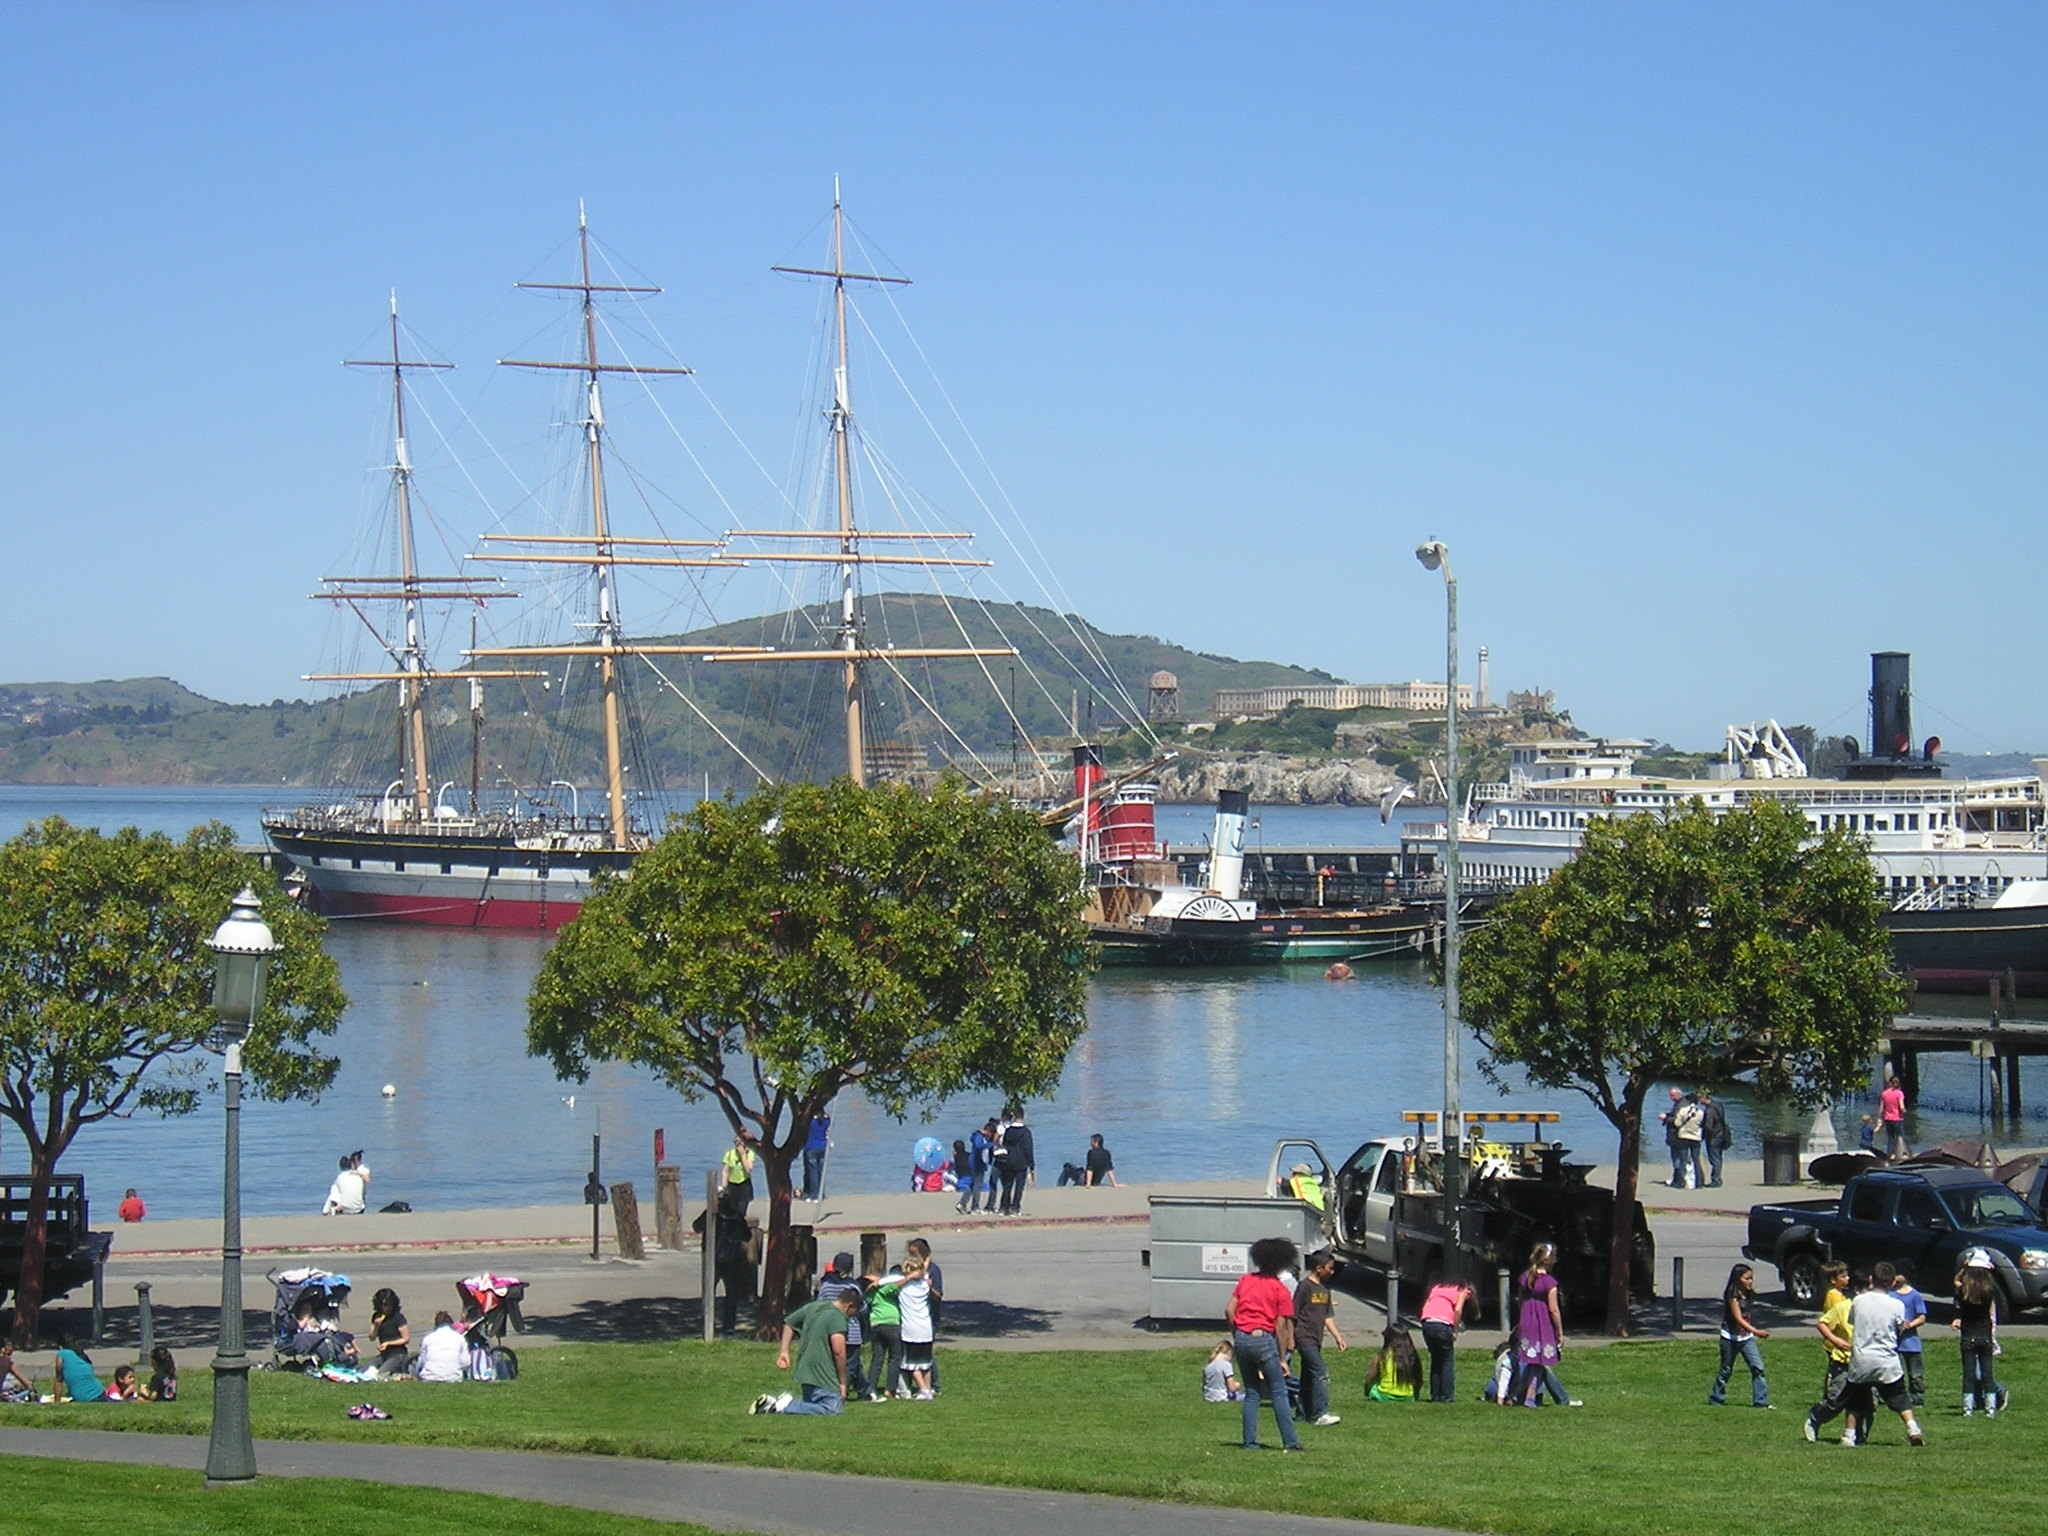 You can board the Balclutha at Hyde St. Pier and then visit the Maritime Museum at Aquatic Park